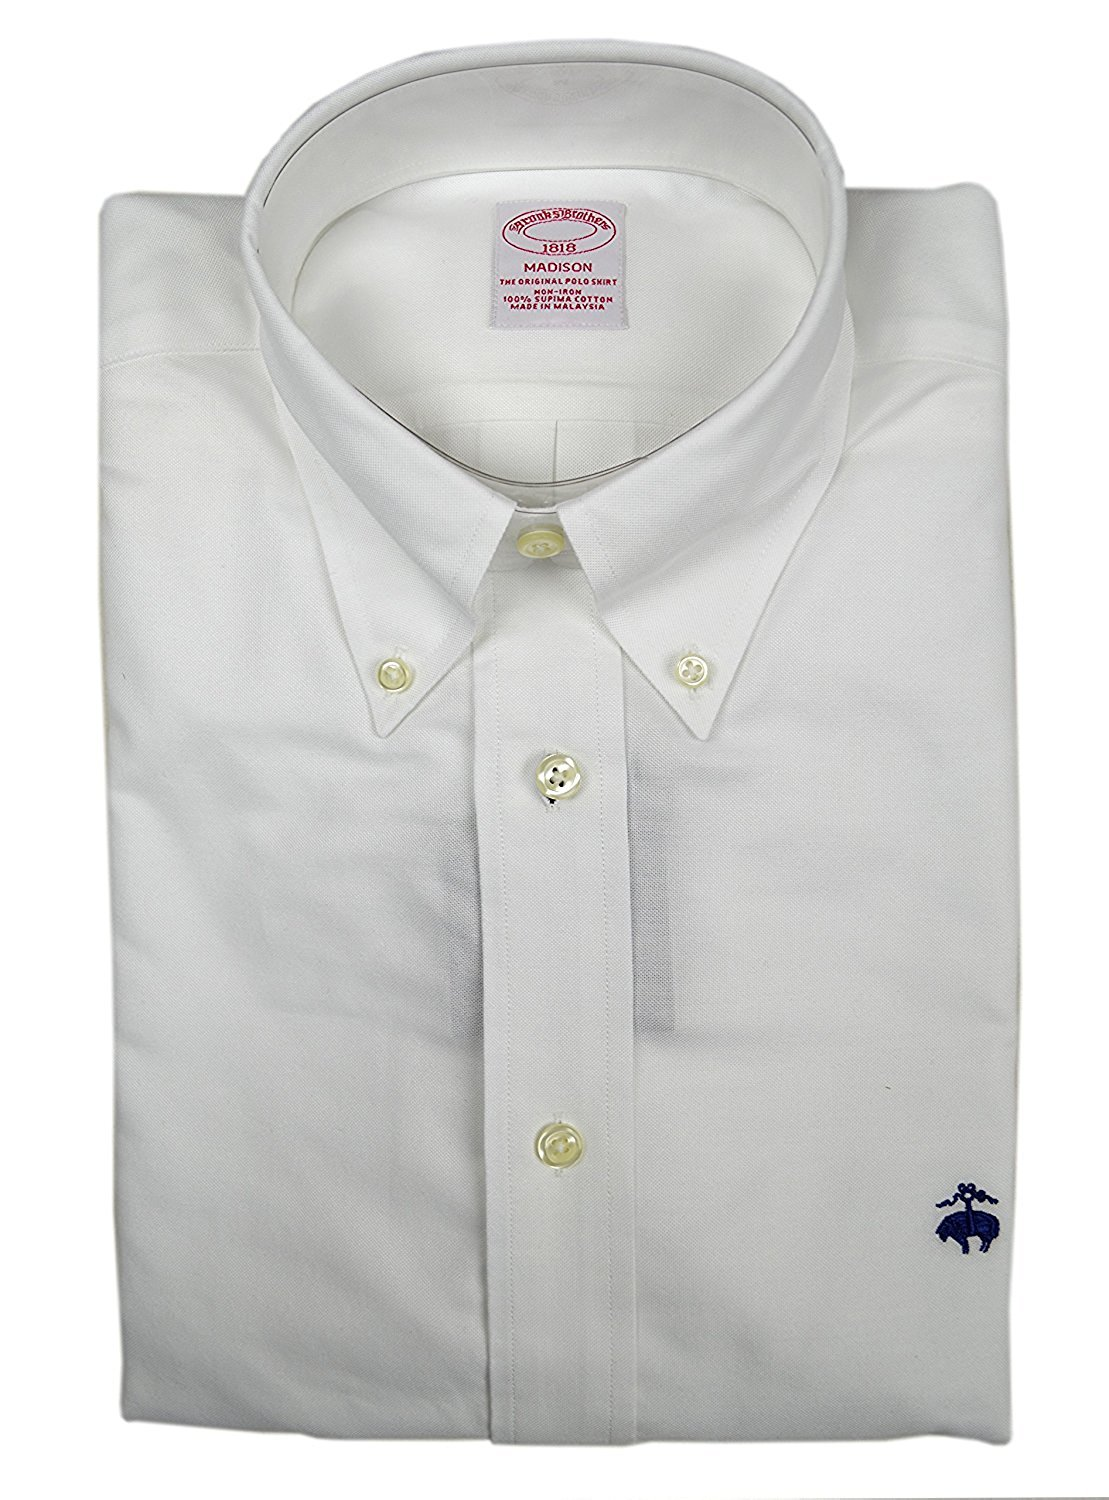 f2a1bd7a316 Get Quotations · Brooks Brothers Men s Madison Fit Supima Cotton The  Original Polo Shirt White Small